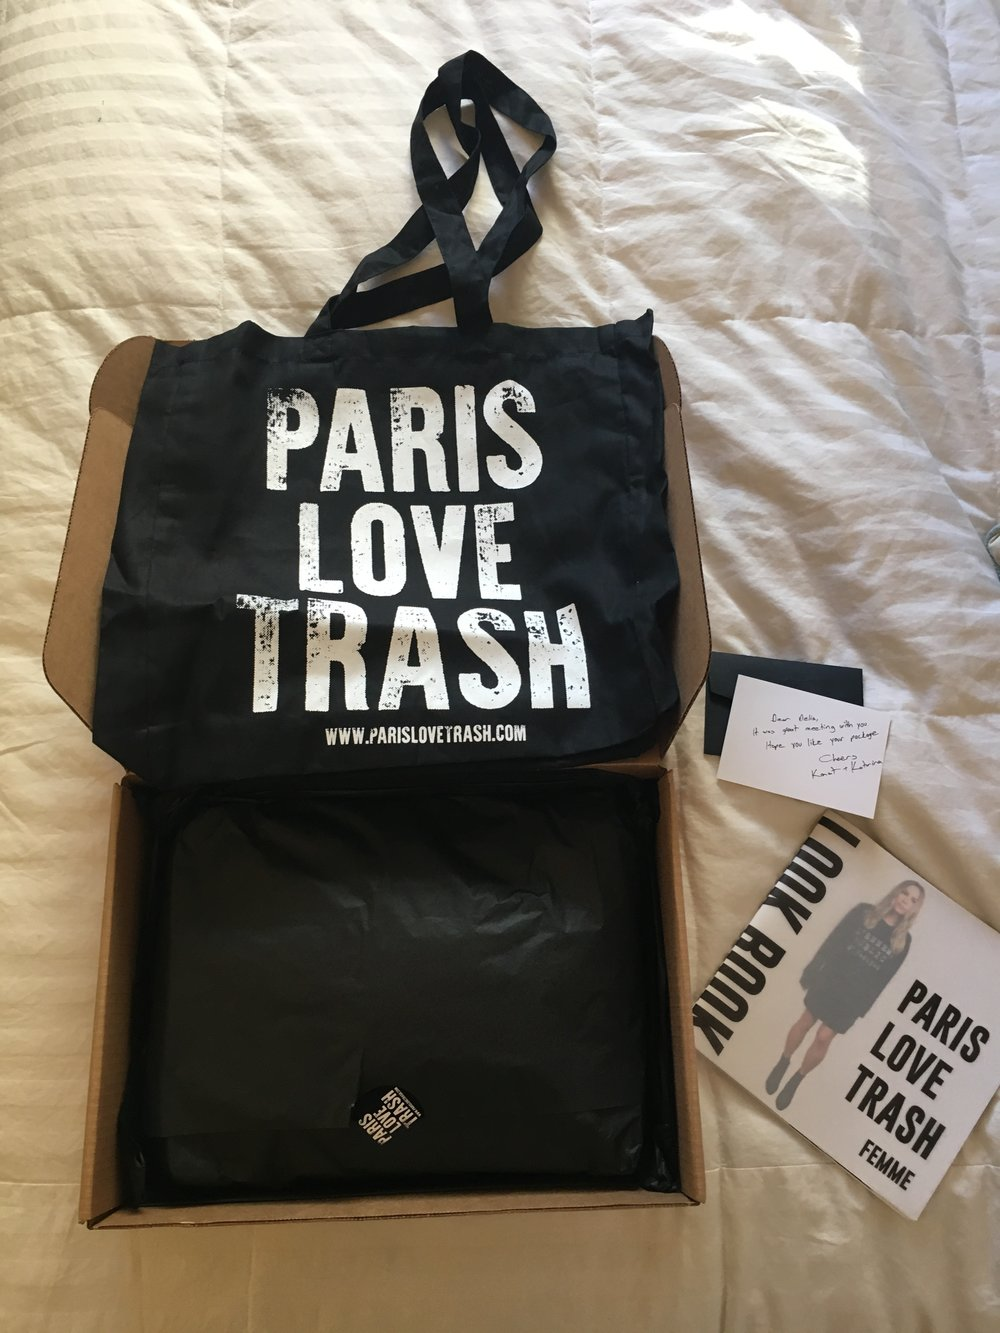 Each delivery comes with a PARIS LOVE TRASH tote bag, which is multifunctional. Mine also came with a handwritten note, and the PARIS LOVE TRASH lookbook